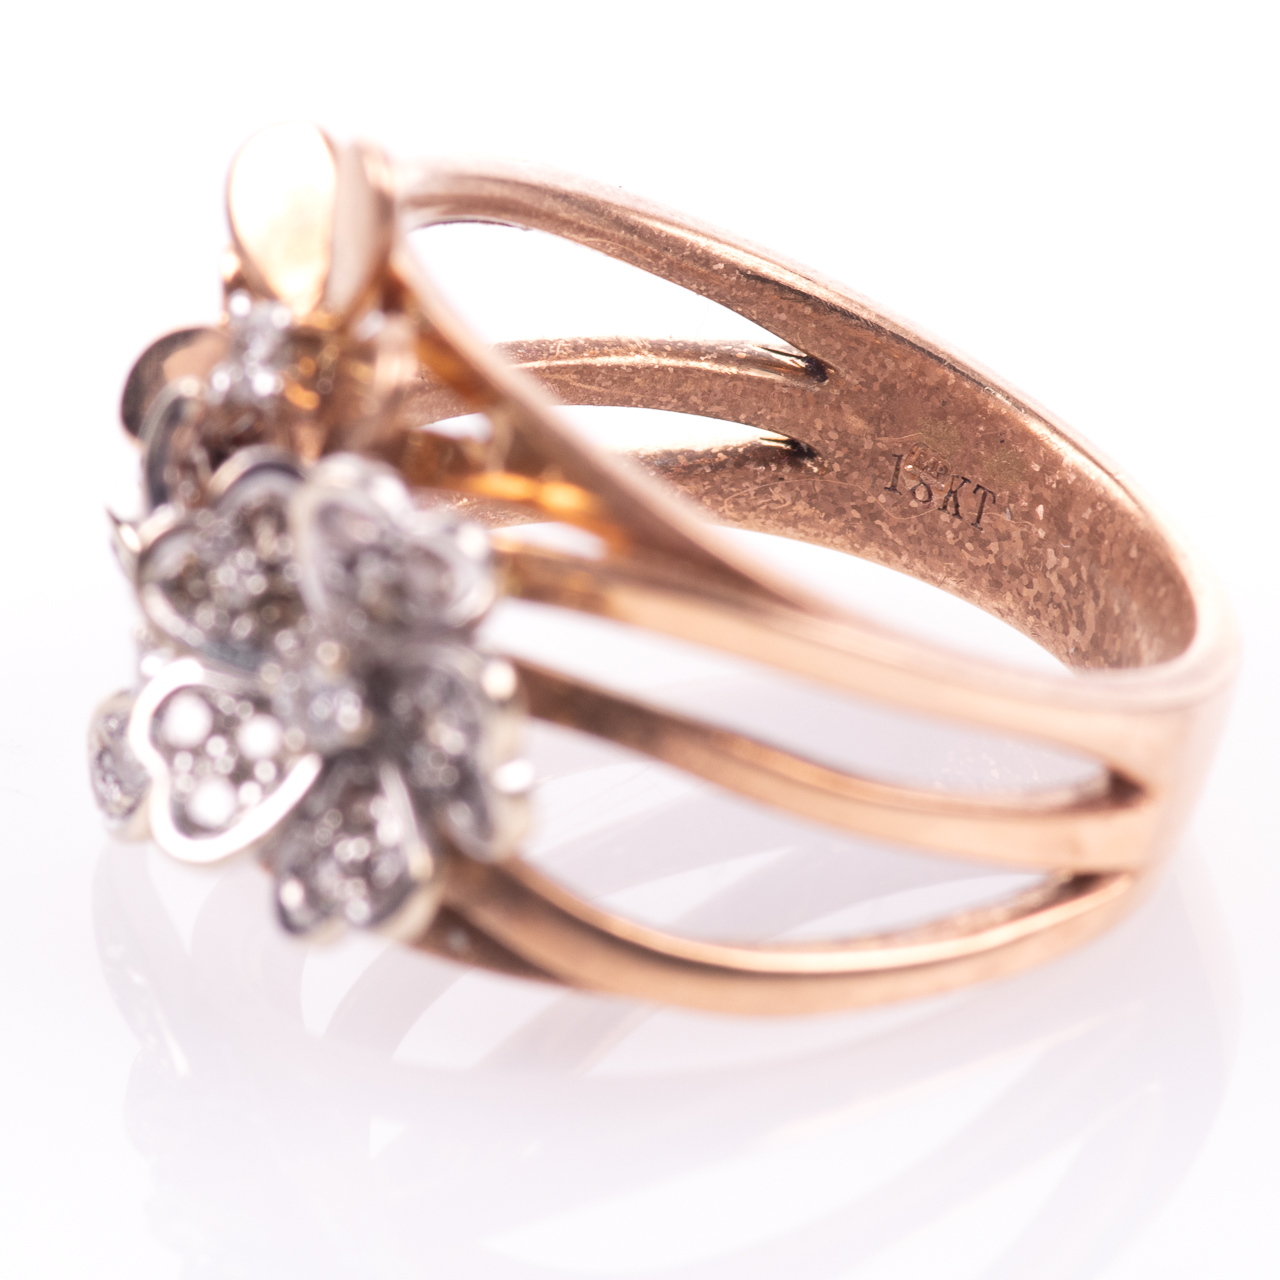 18ct Pink Gold Floral 0.25ct Diamond Ring - Image 5 of 7